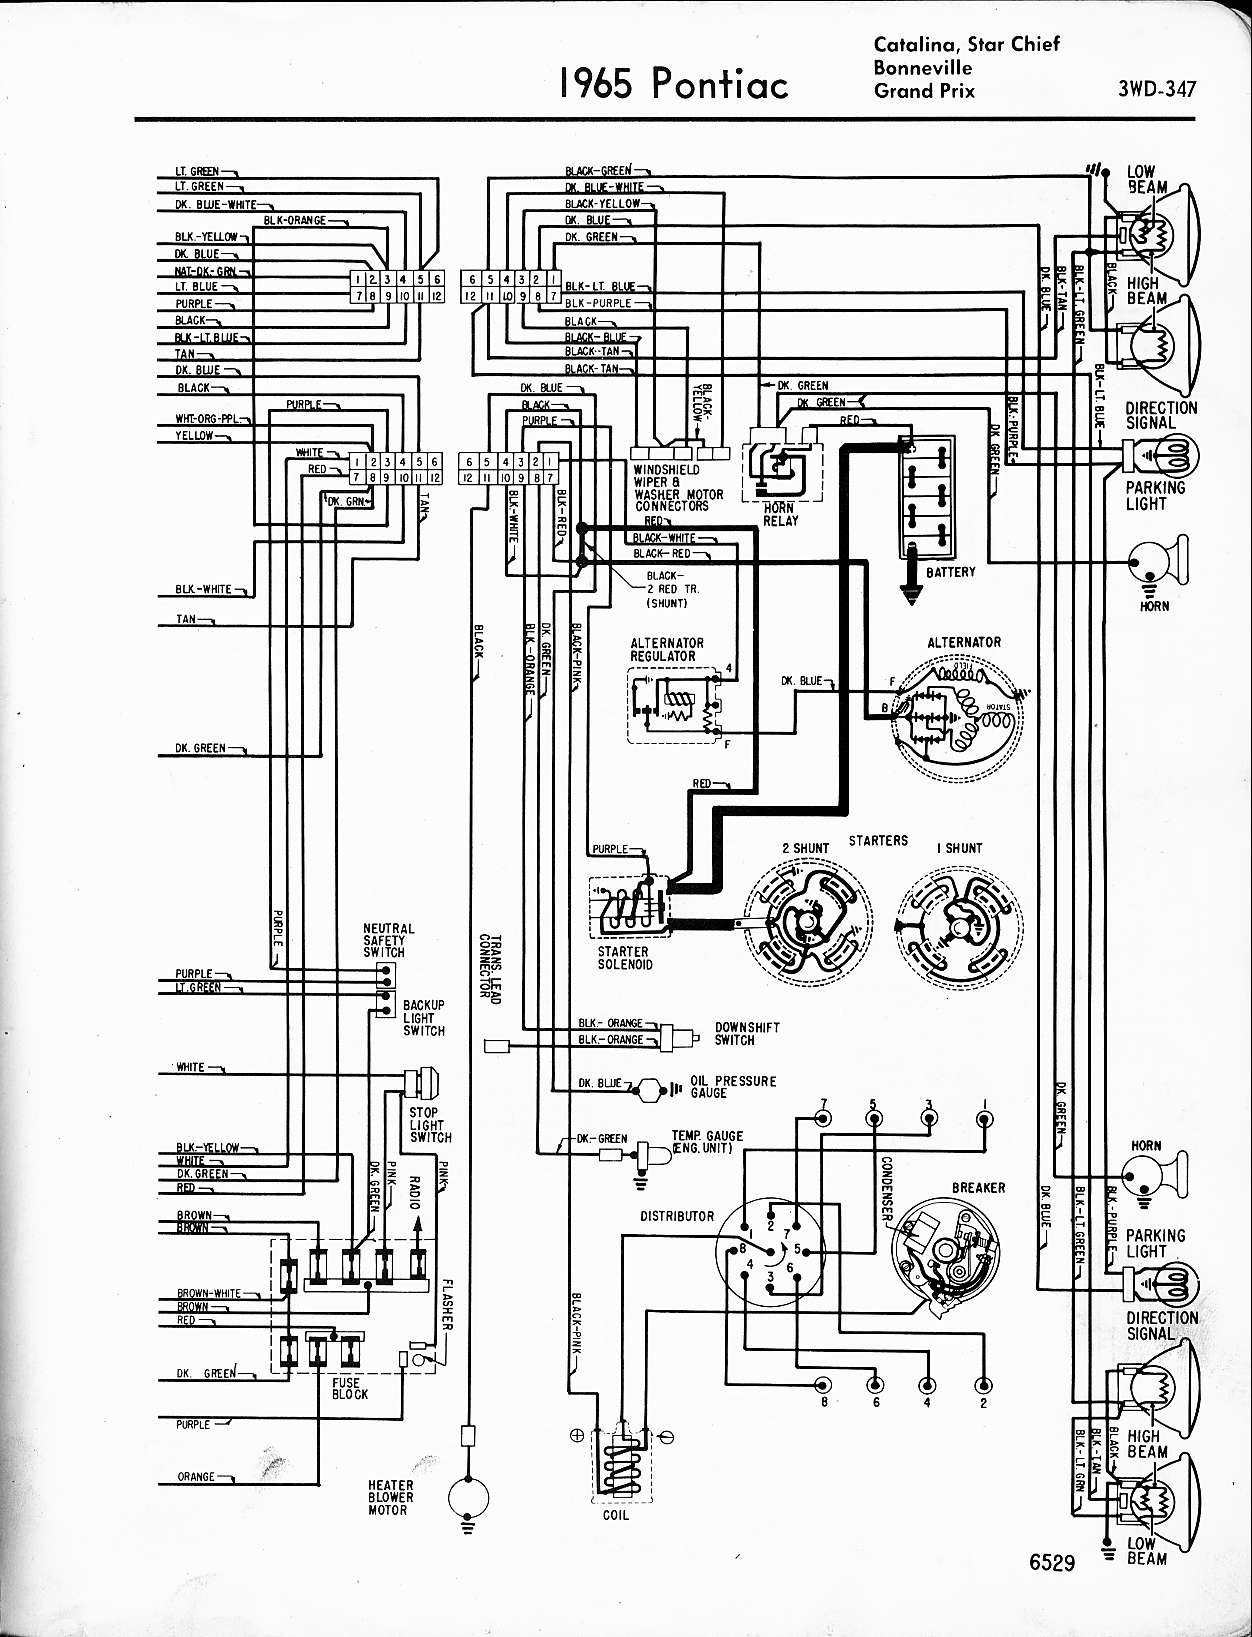 1970 pontiac lemans wiring diagram wallace racing - wiring diagrams #1